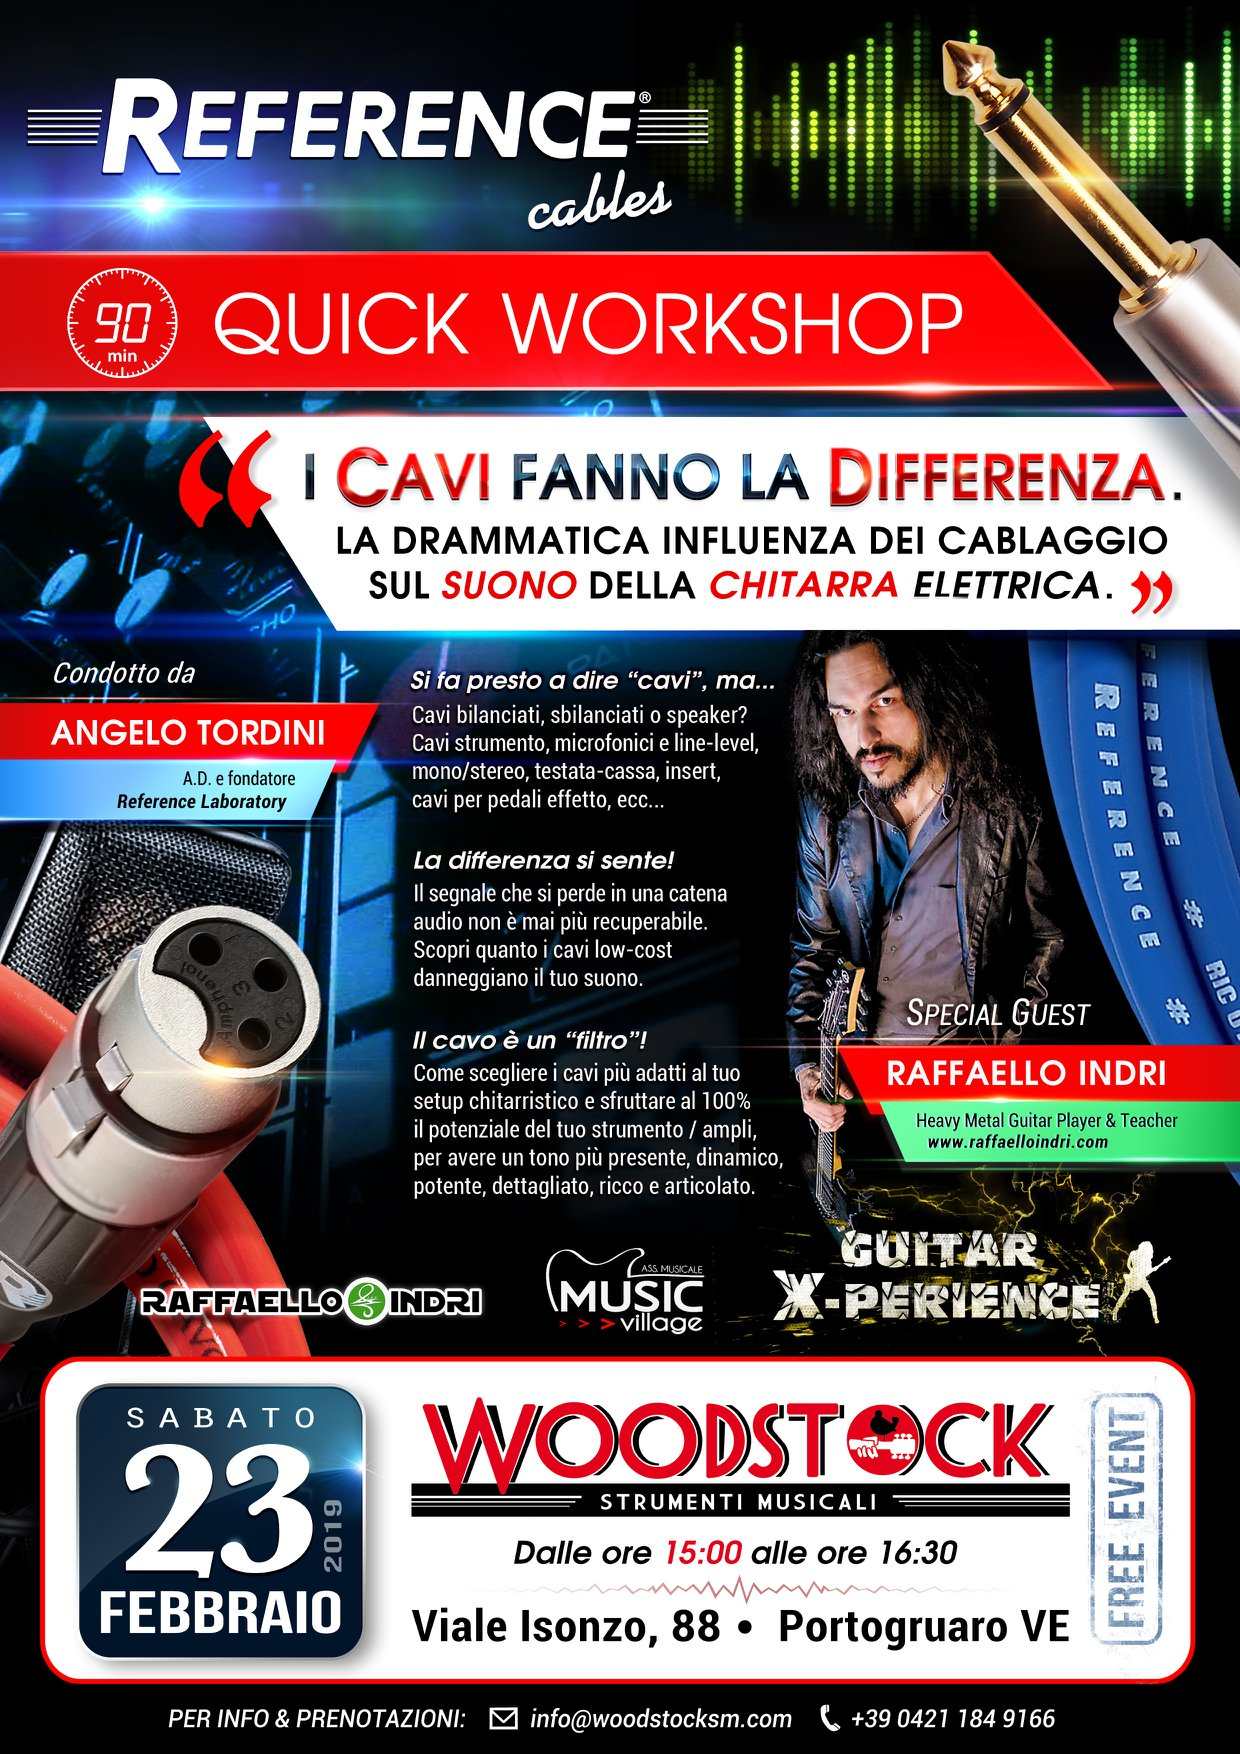 GUITAR X-PERIENCE 2019 QUICK WORKSHOP